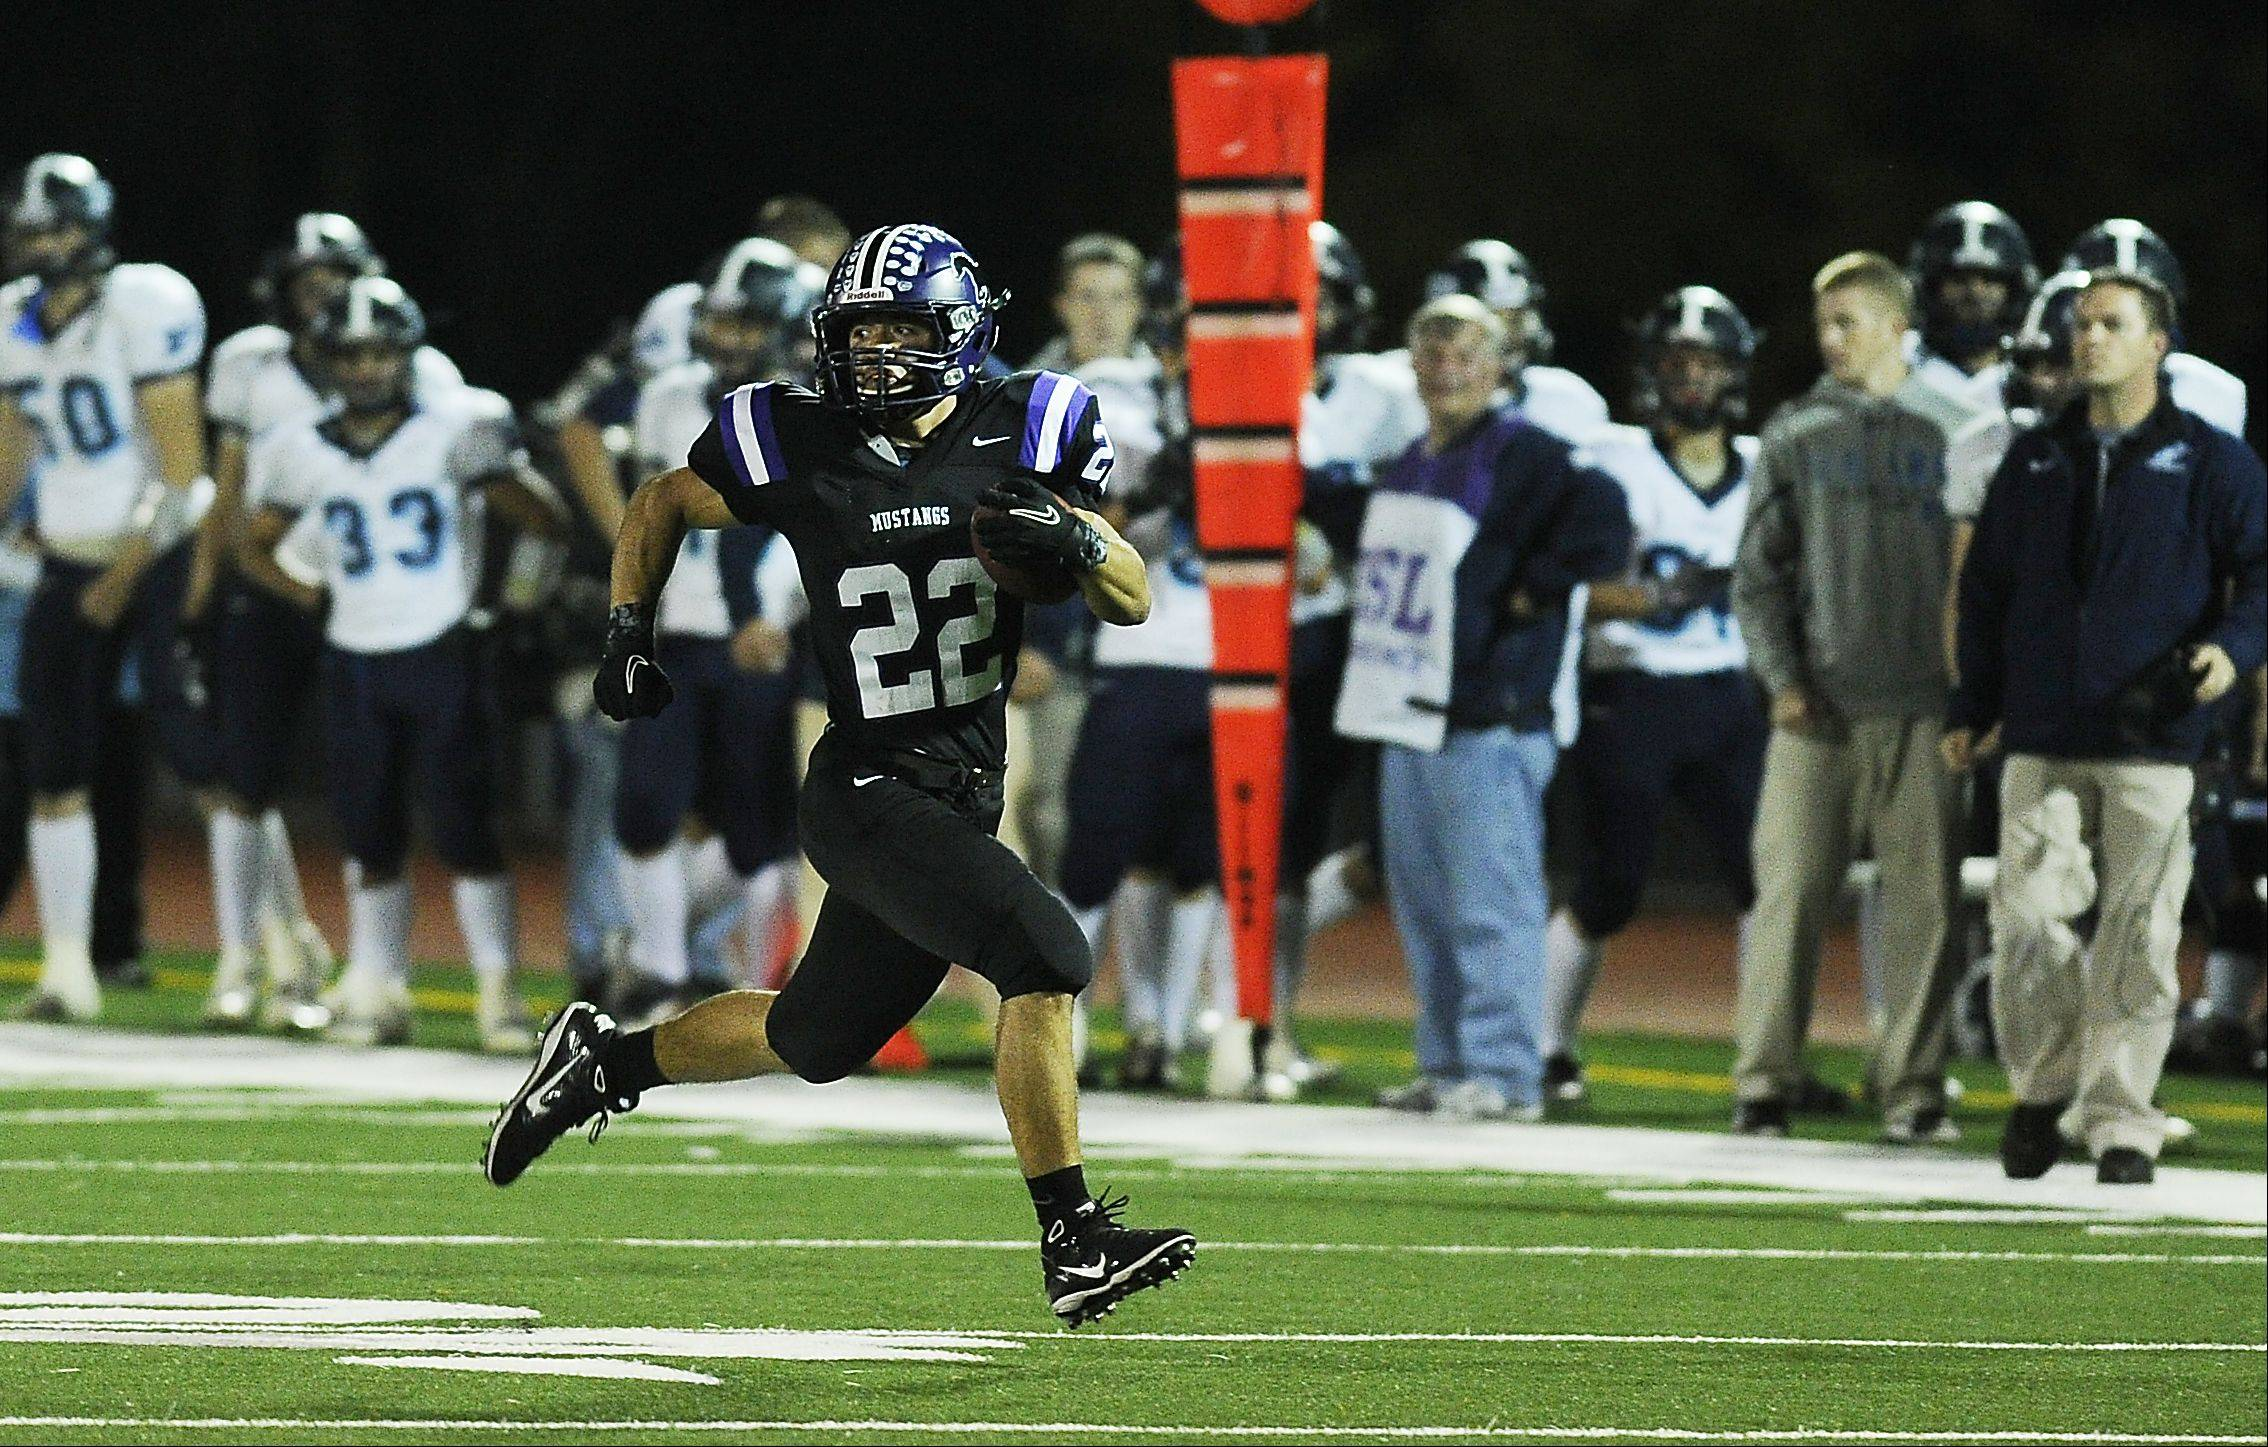 Rolling Meadows' Steven Royster looks behind him with nothing but open space in front on his way to a first-half touchdown against visiting Prospect on Friday.